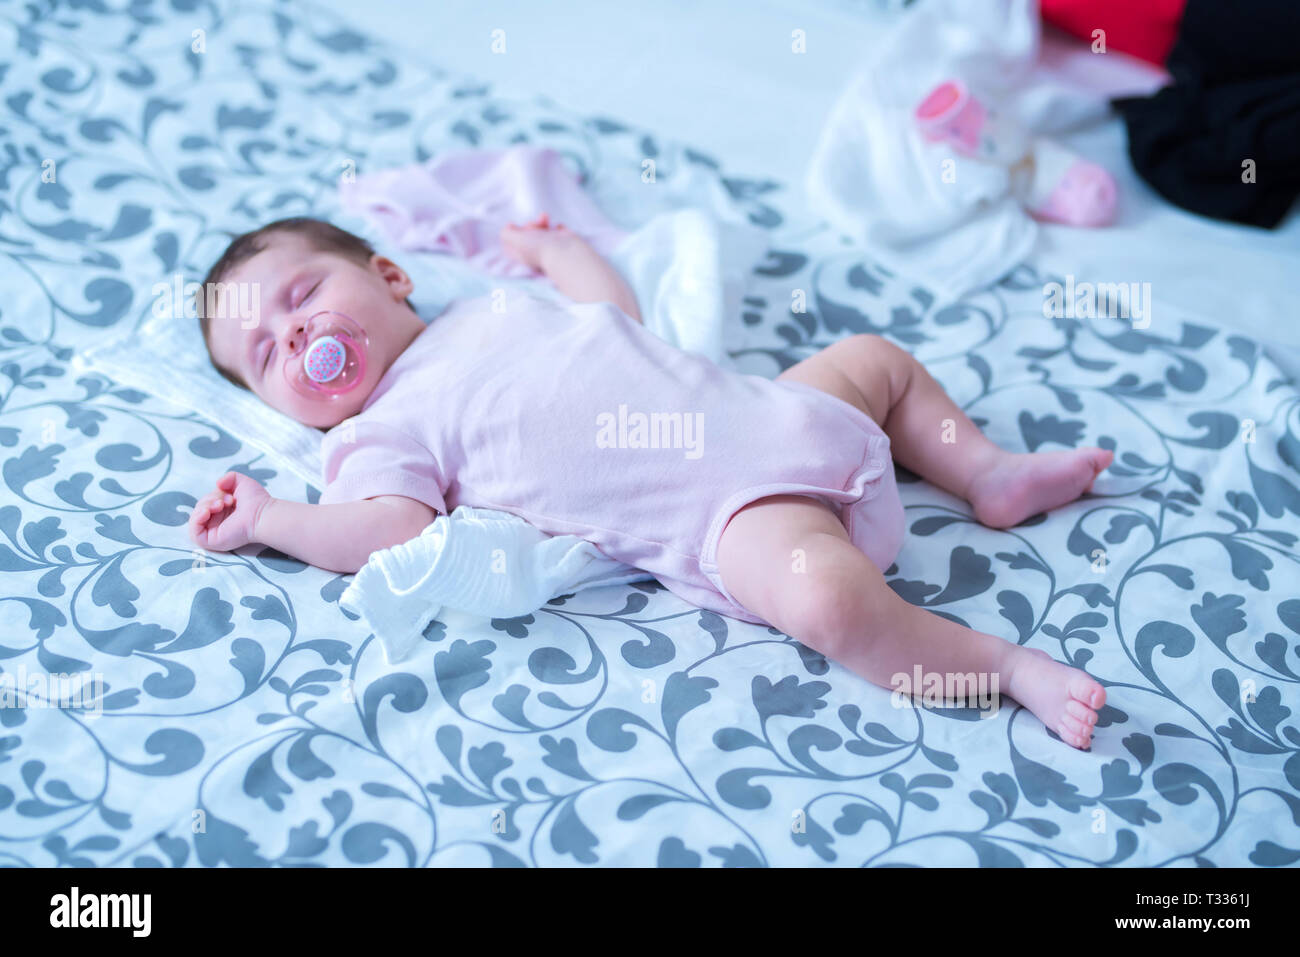 A Cute Baby Girl Lying And Sleeping On A Grey Patterned Blanket With A Dummy In Her Mouth Stock Photo Alamy